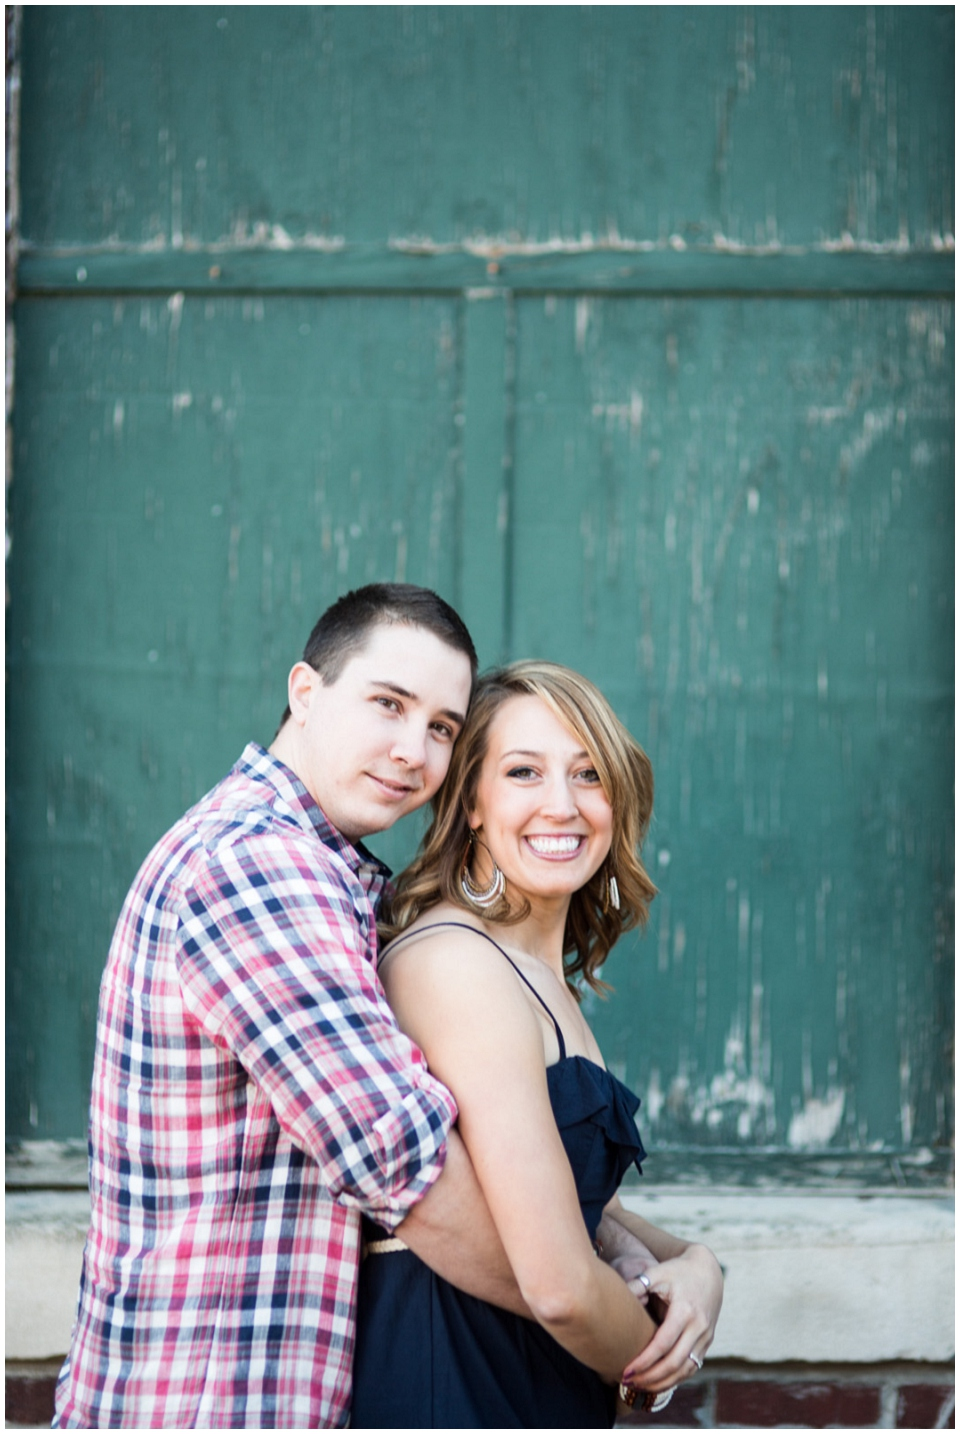 RachelGarrett-Omaha-Engagement-session-020.jpg